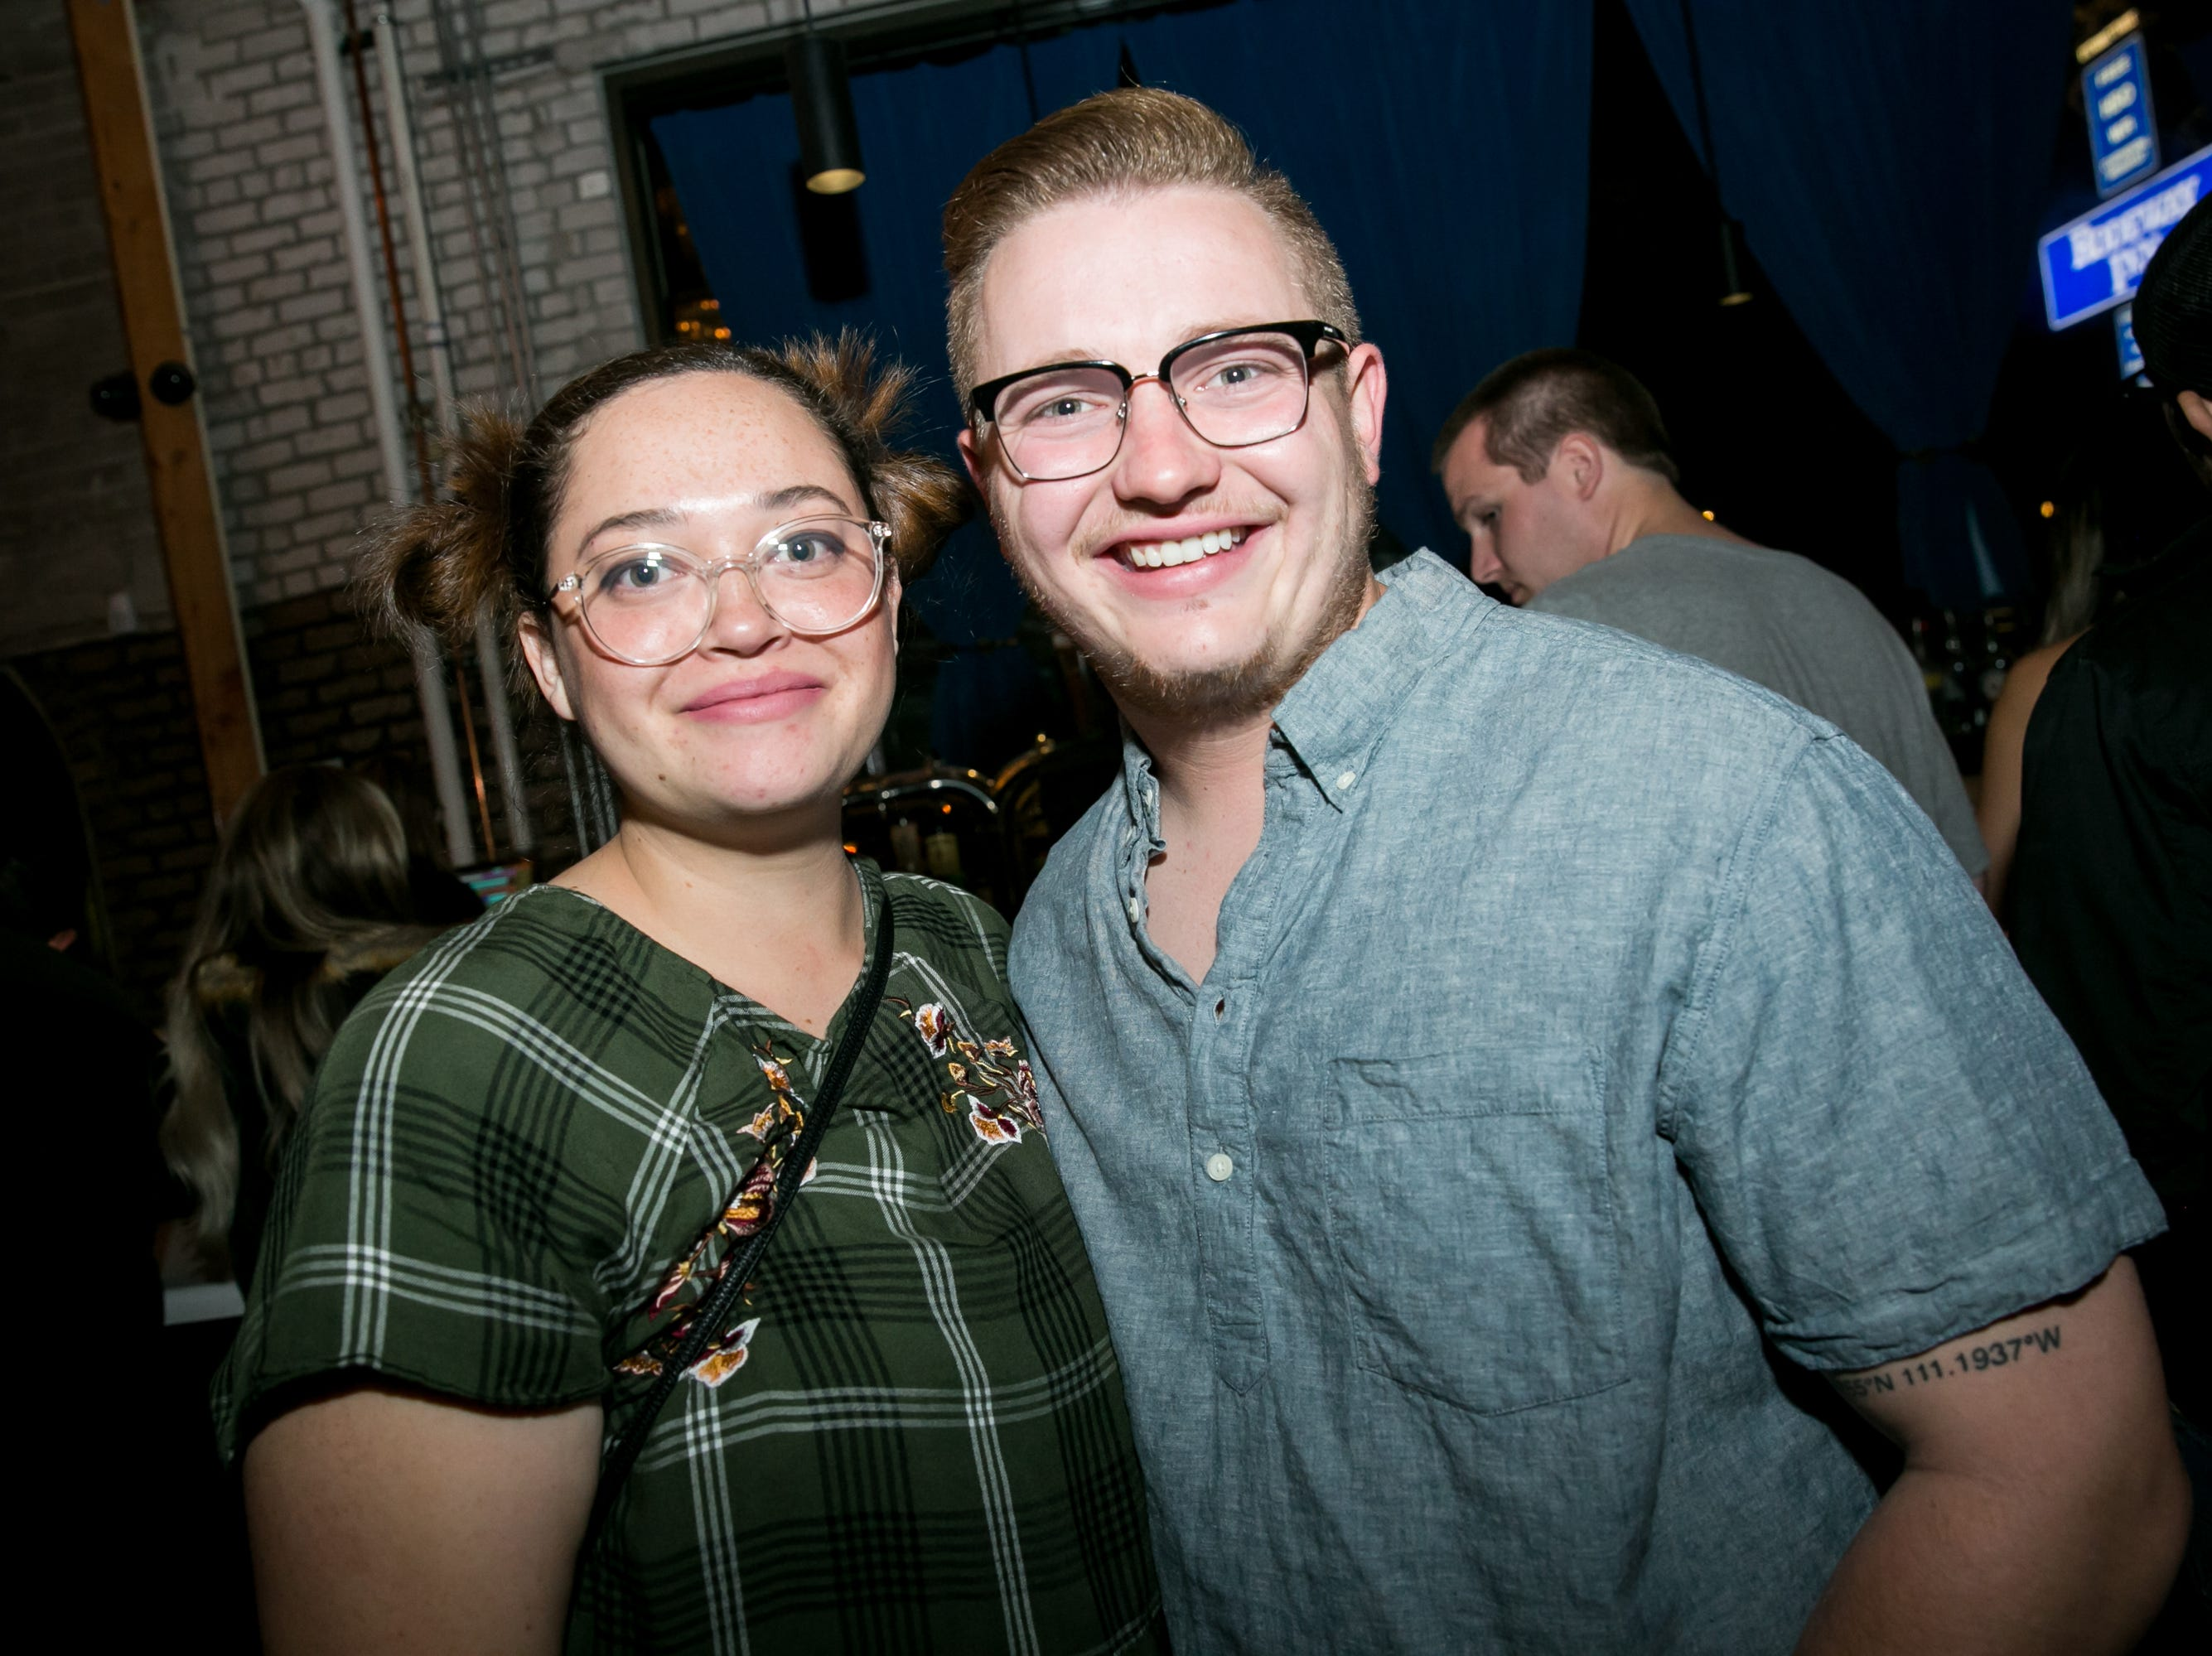 This duo got a sense of how forever feels during the KMLE Country 90's Throwback at The Van Buren on Friday, Jan. 11, 2019.